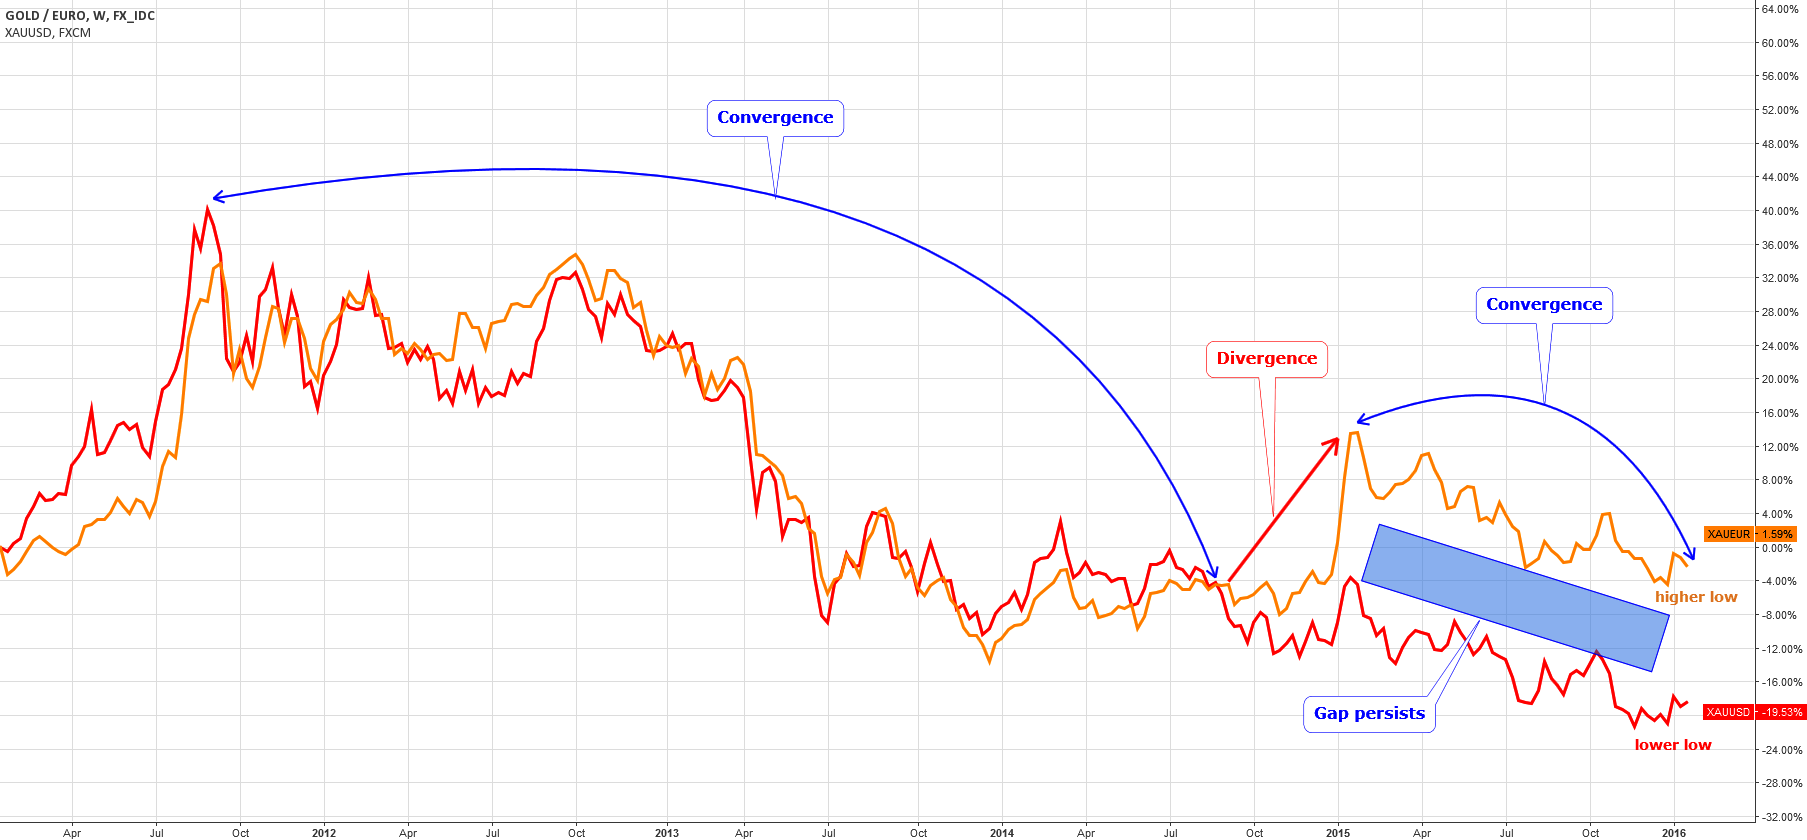 5-year Comparative Dynamics: Gold/Dollar Vs. Gold/Euro